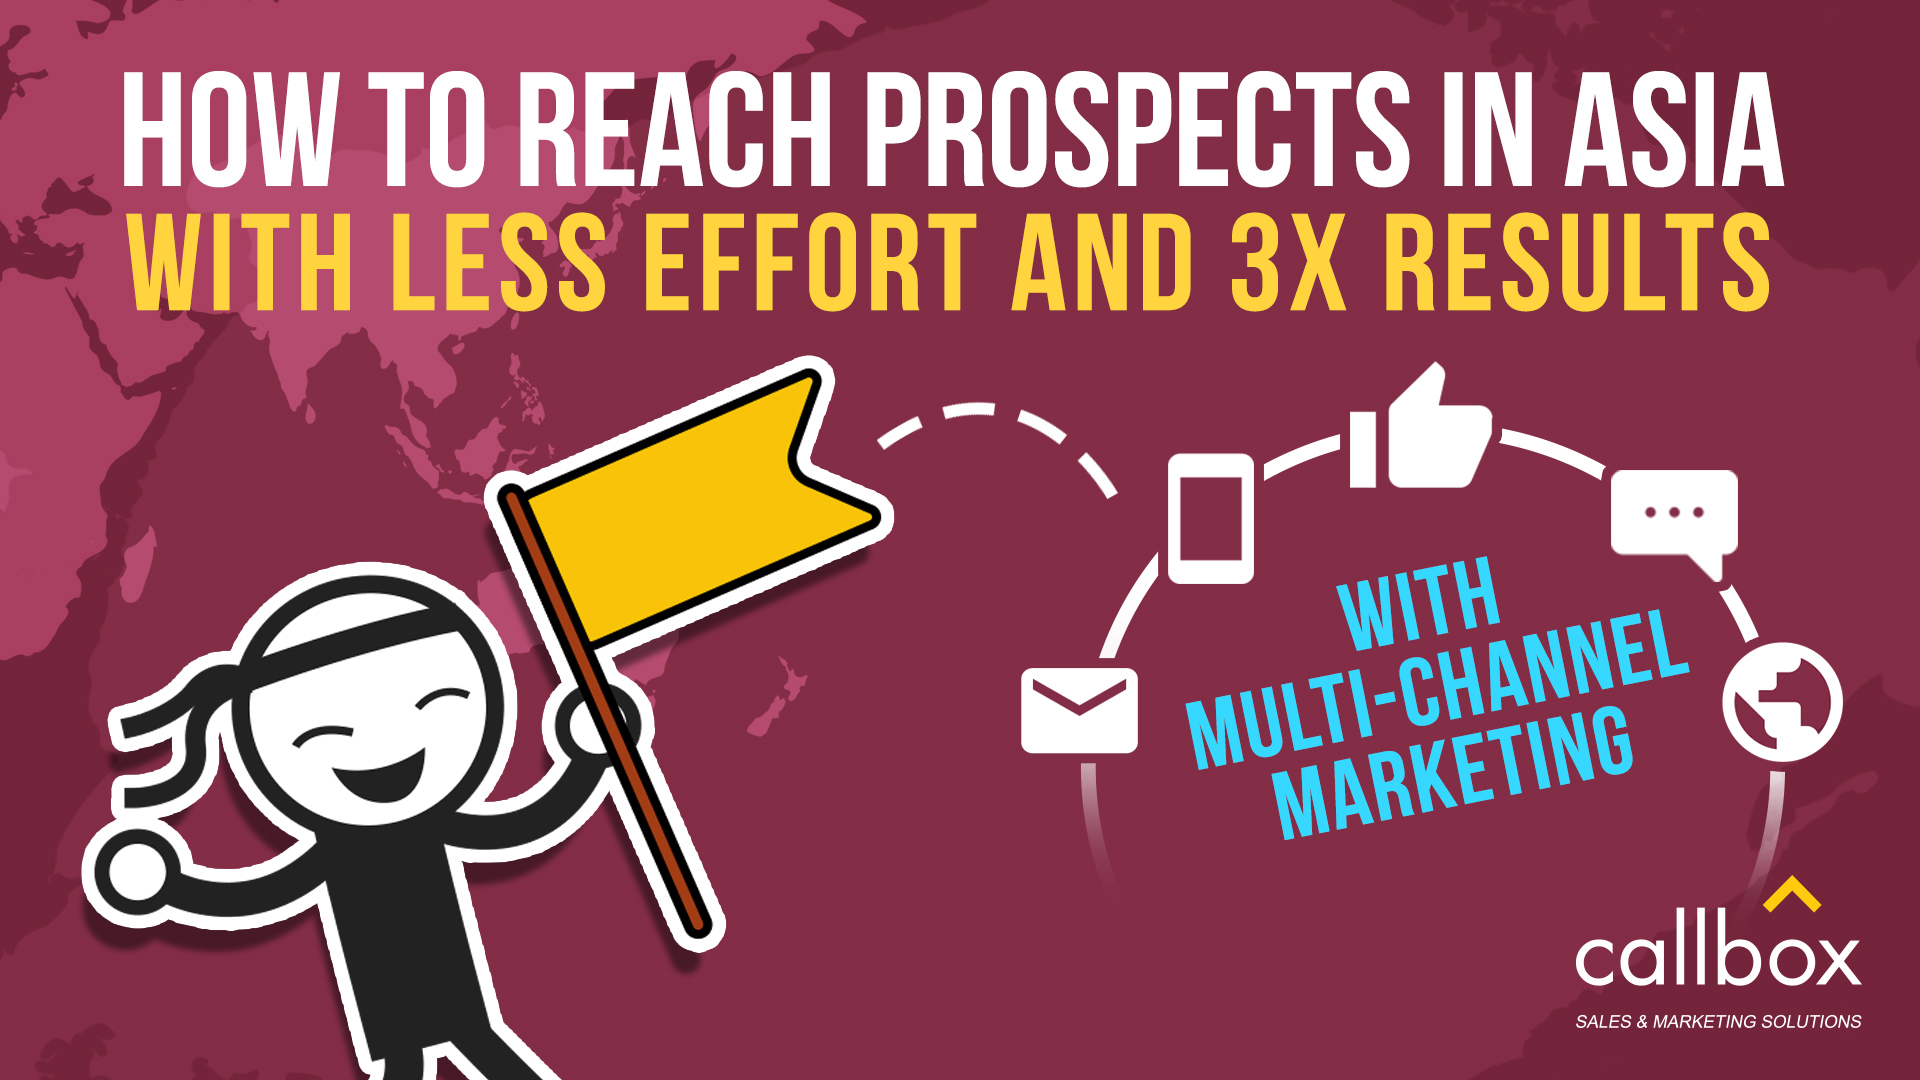 Reach Prospects in Asia with Less Effort and 3x Results [VIDEO]